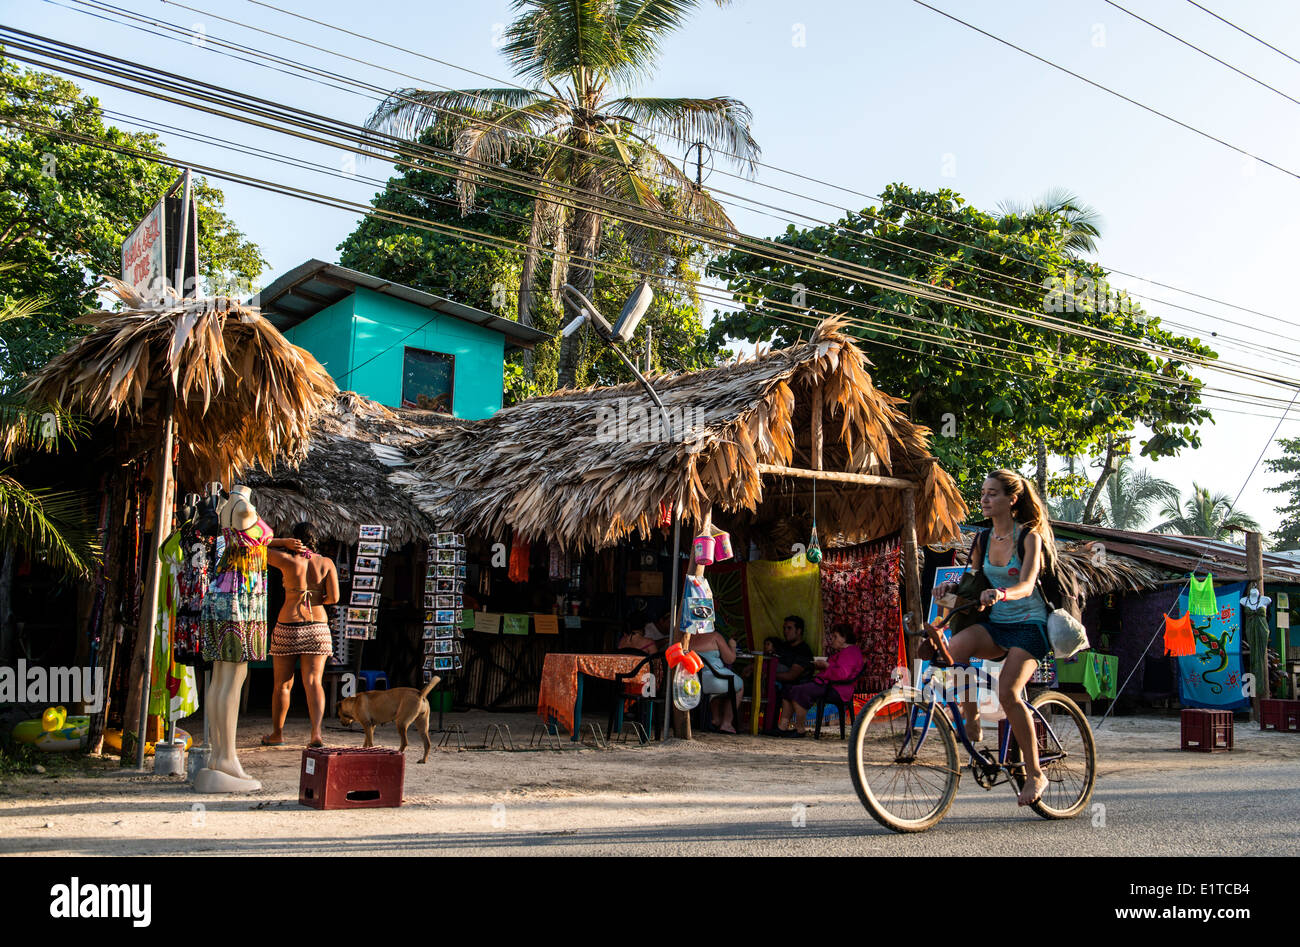 Vélo tourisme Puerto Viejo Limon Costa Rica Photo Stock